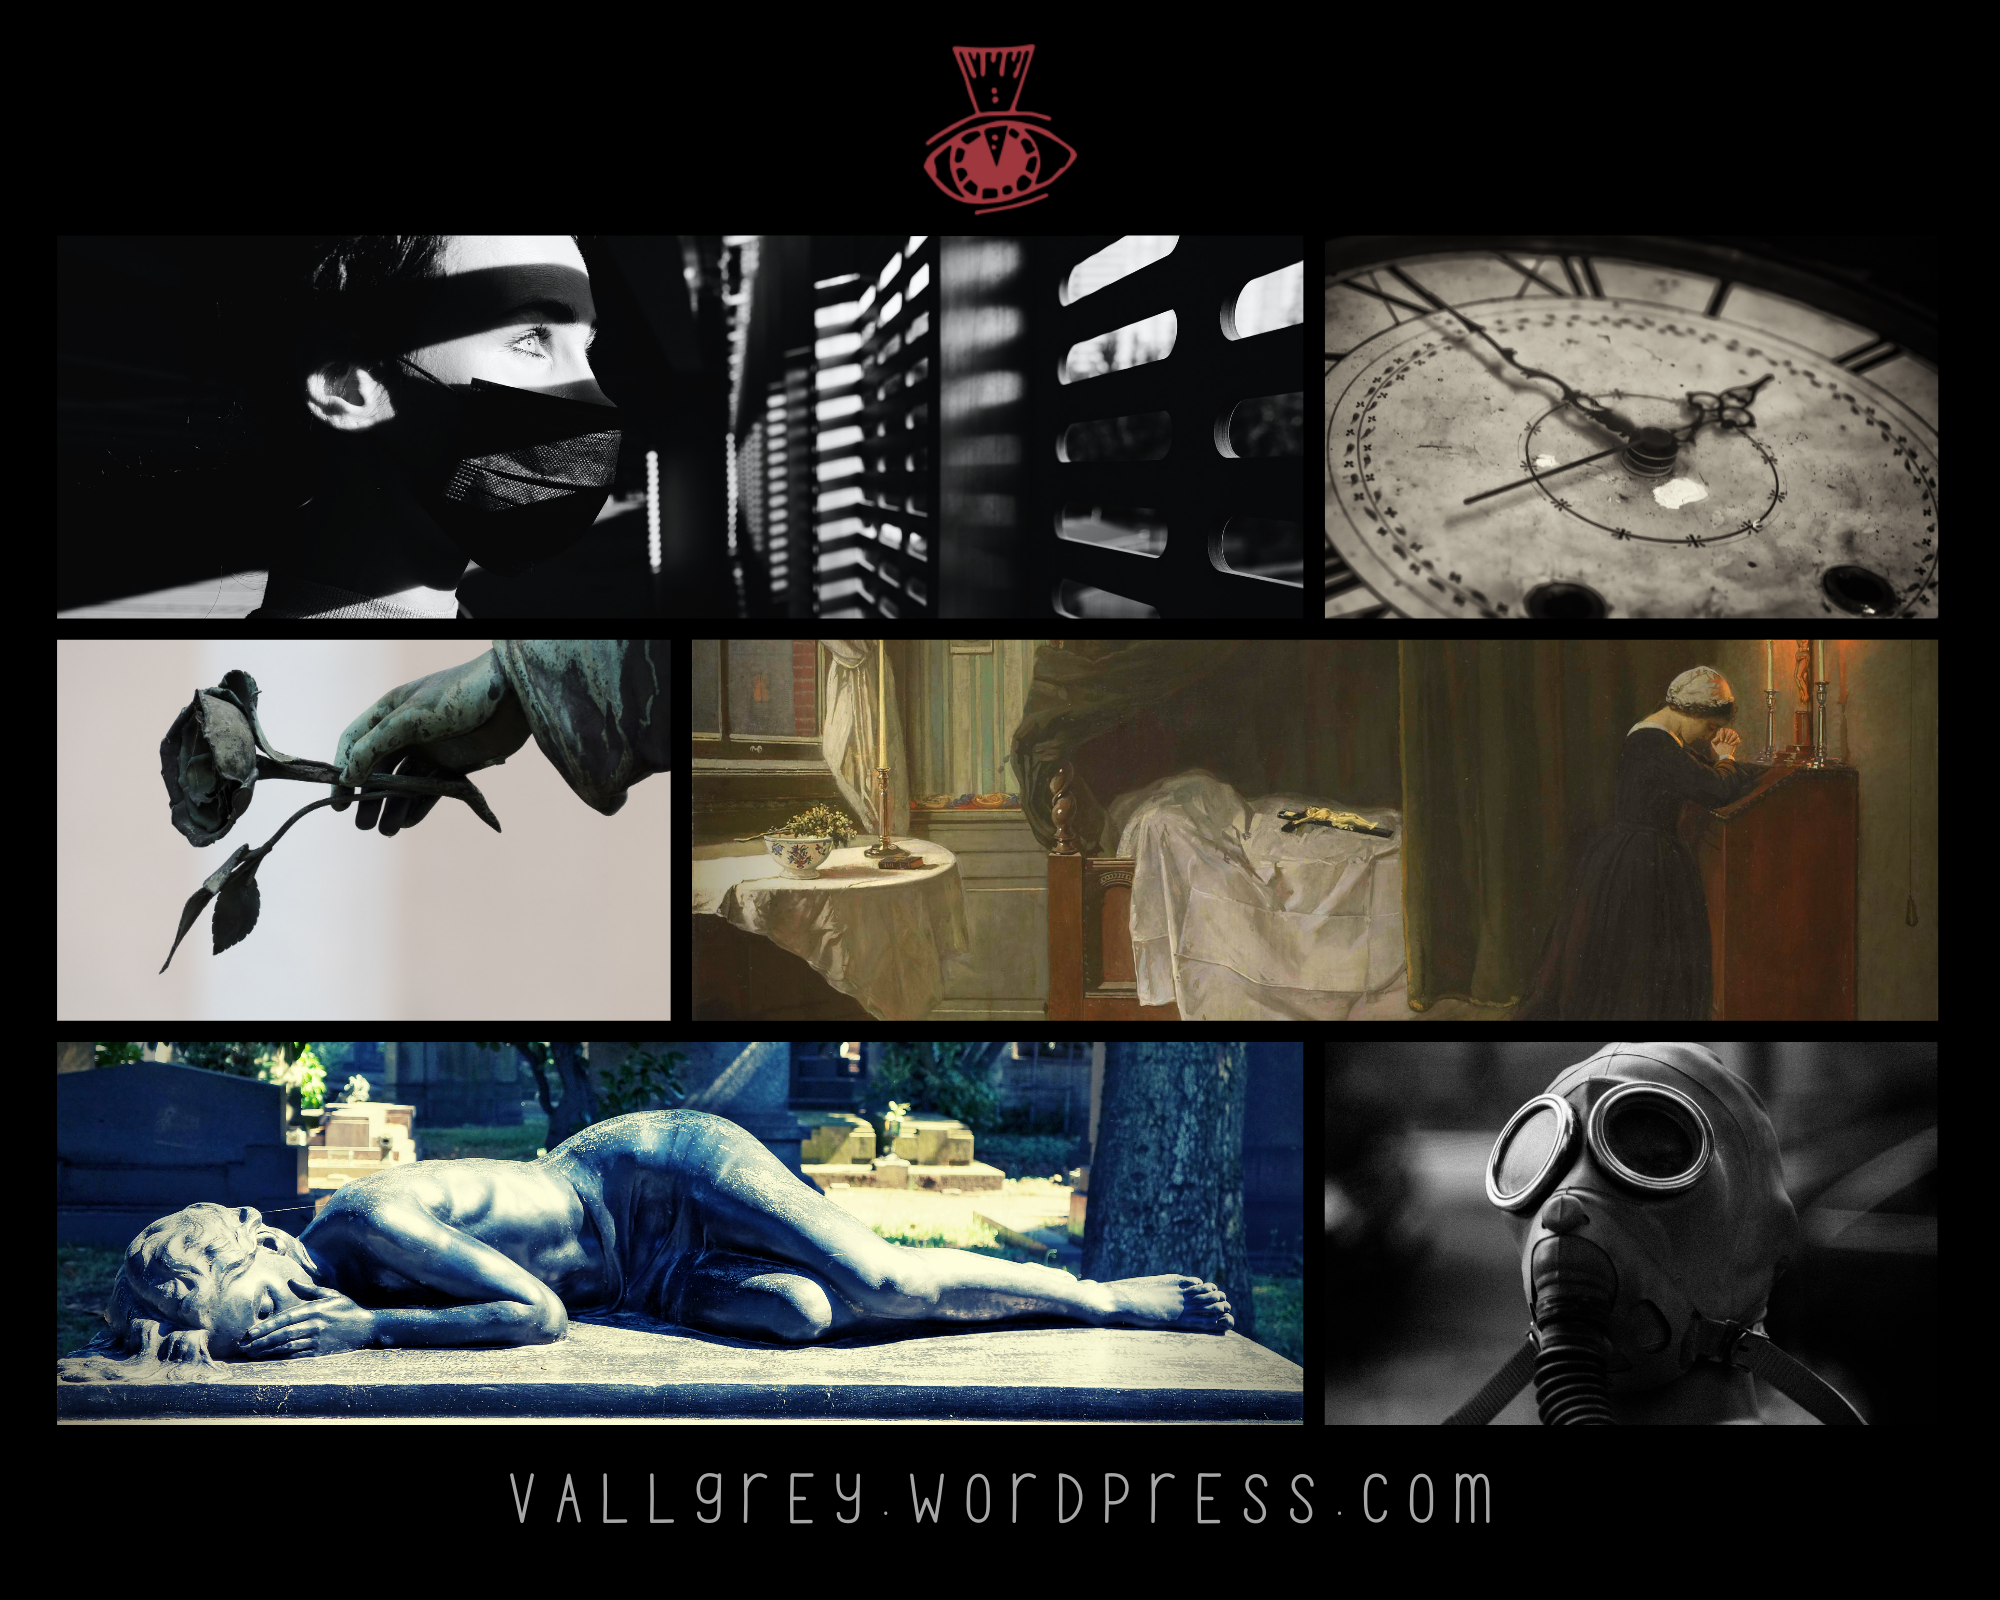 collage or mood board of images about pandemic, time, masks and quarantine.